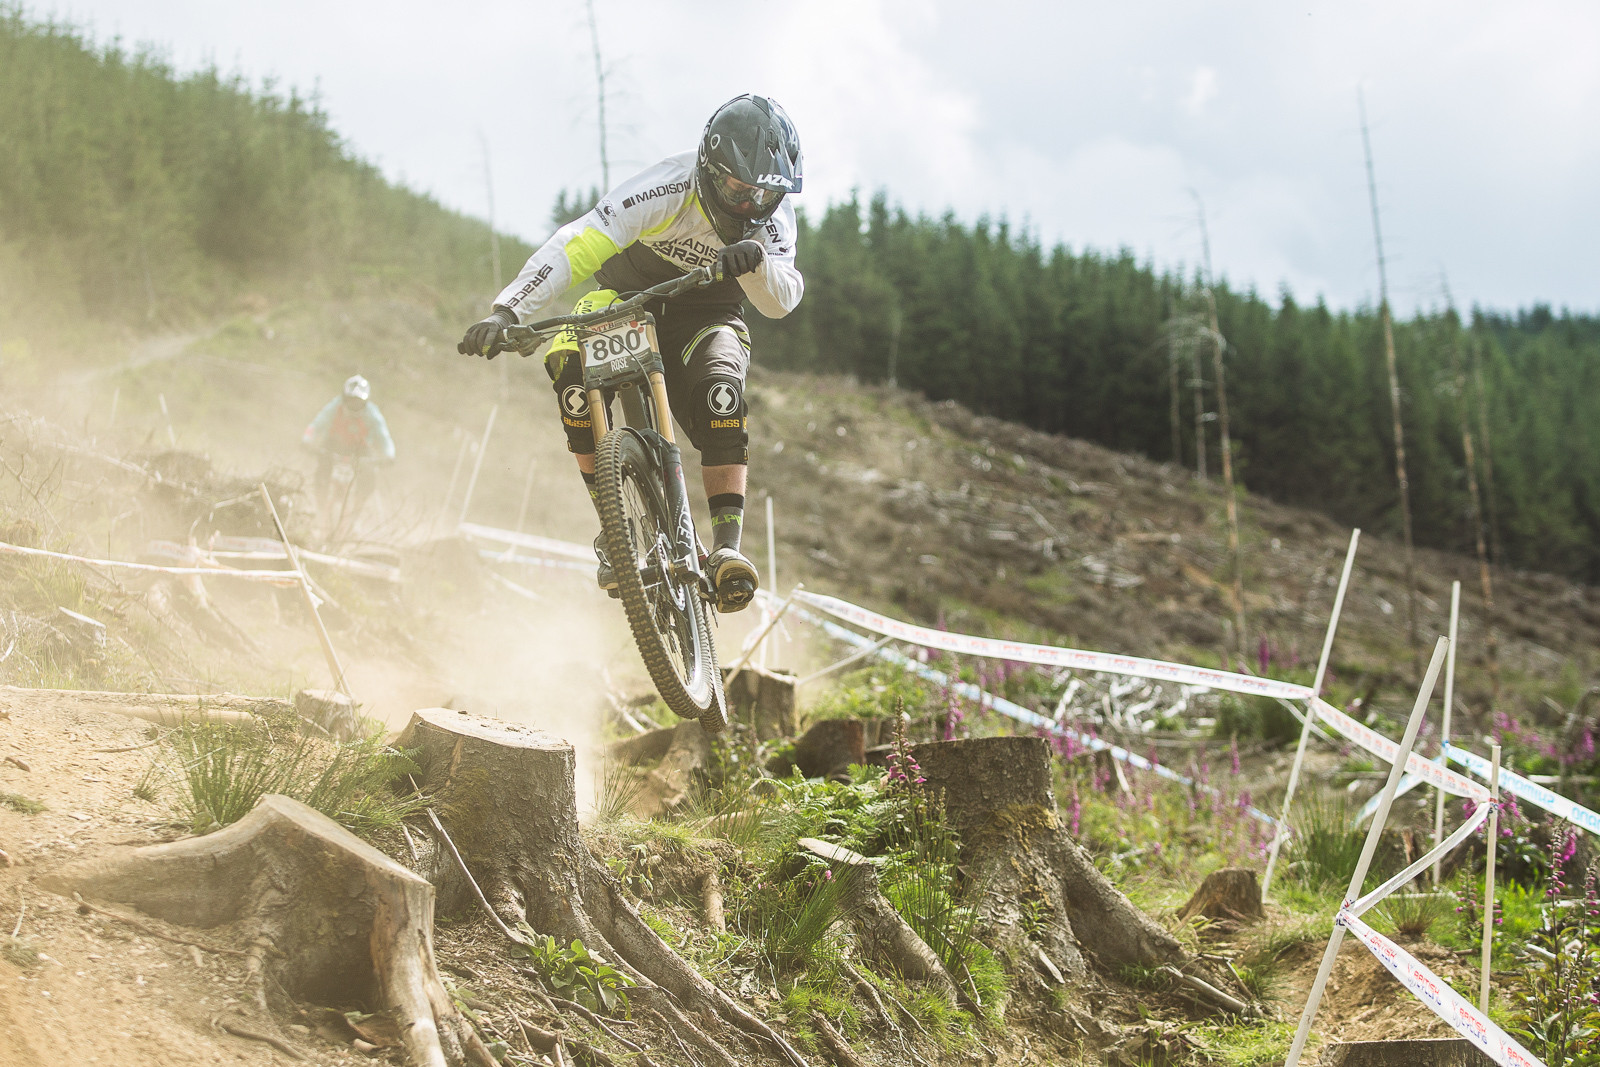 Matt Walker, British DH Series, Bala - RACE REPORT - 2015 British Downhill Series Bala - Mountain Biking Pictures - Vital MTB